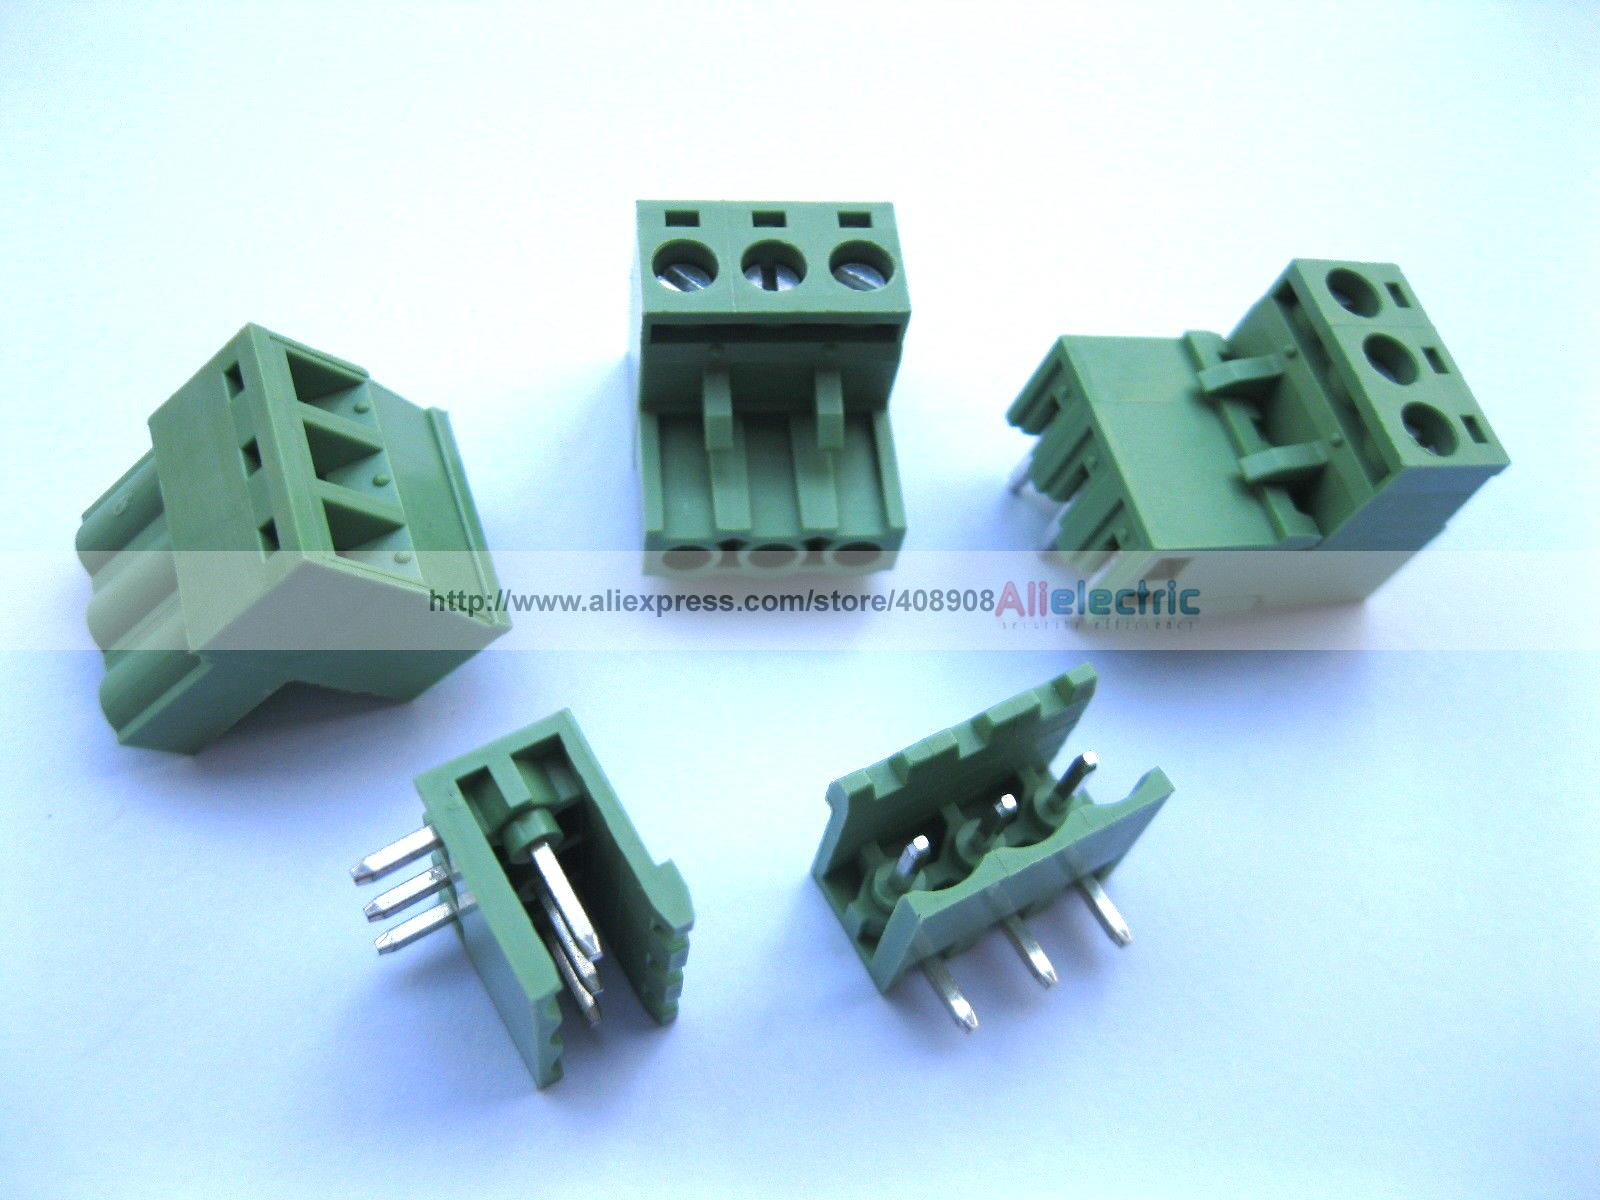 50 Pcs 5.08mm Angle 3 Pin Screw Terminal Block Connector Pluggable Type Green<br><br>Aliexpress